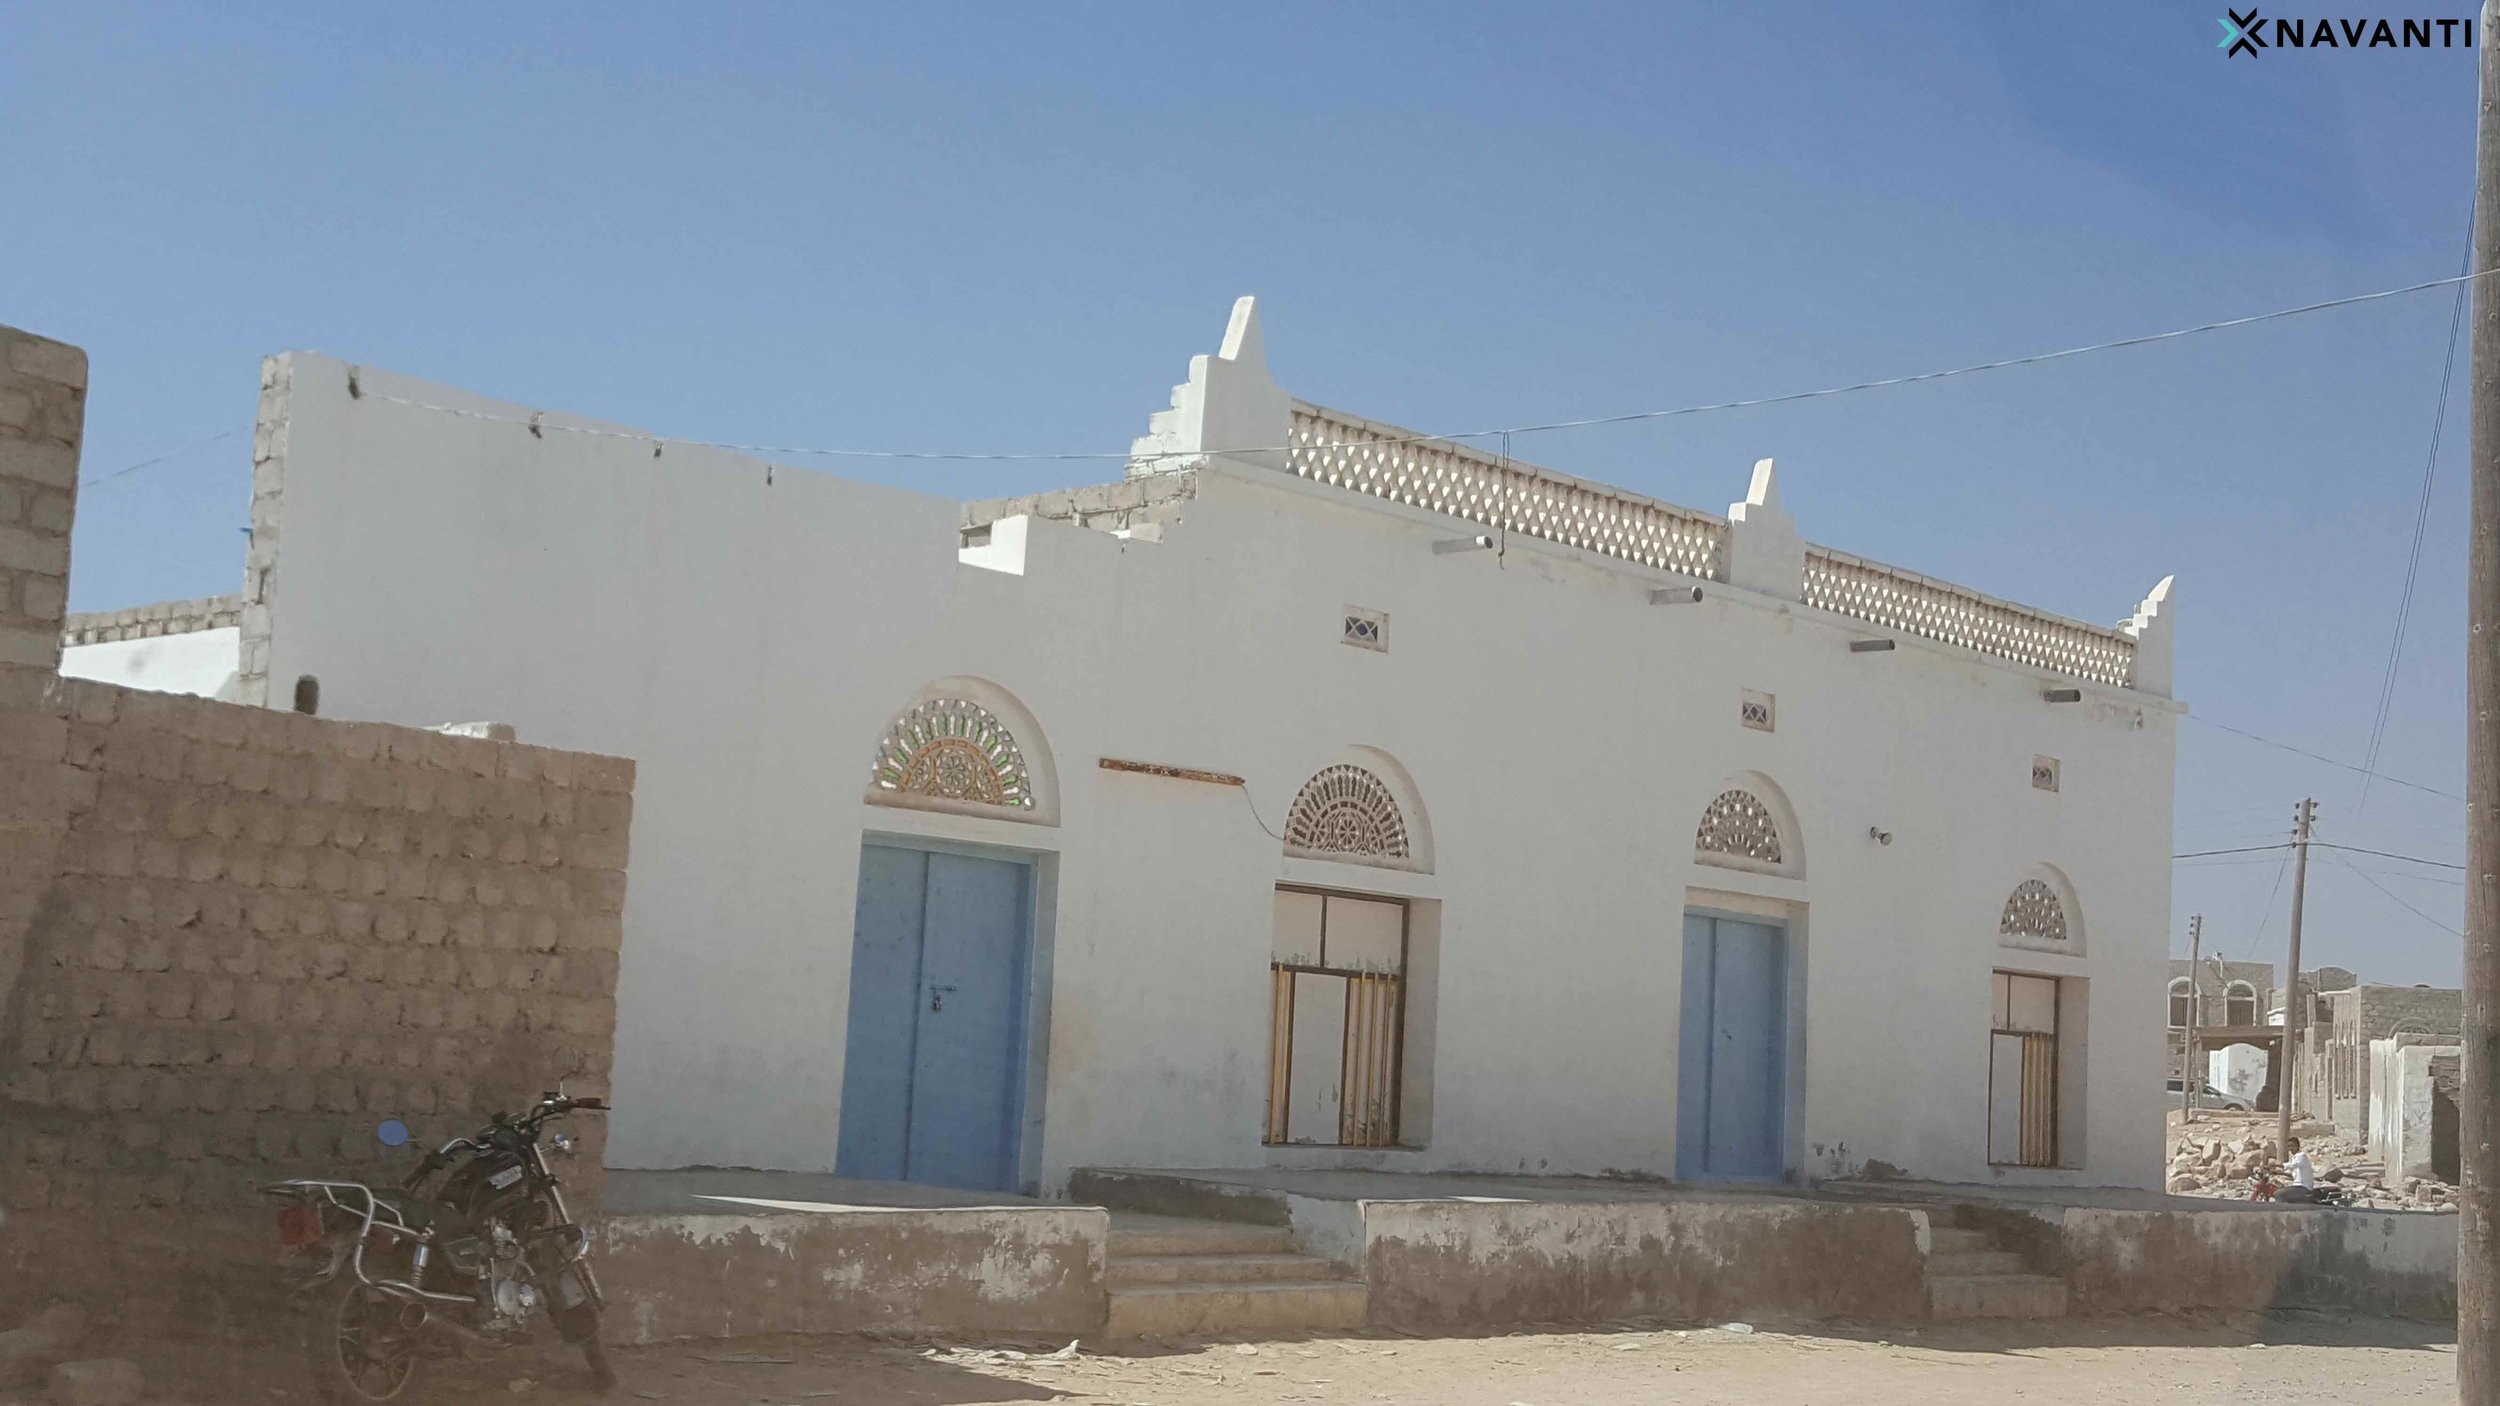 Historic Sufi mosque in Sayhut, al-Mahra. Source: Navanti